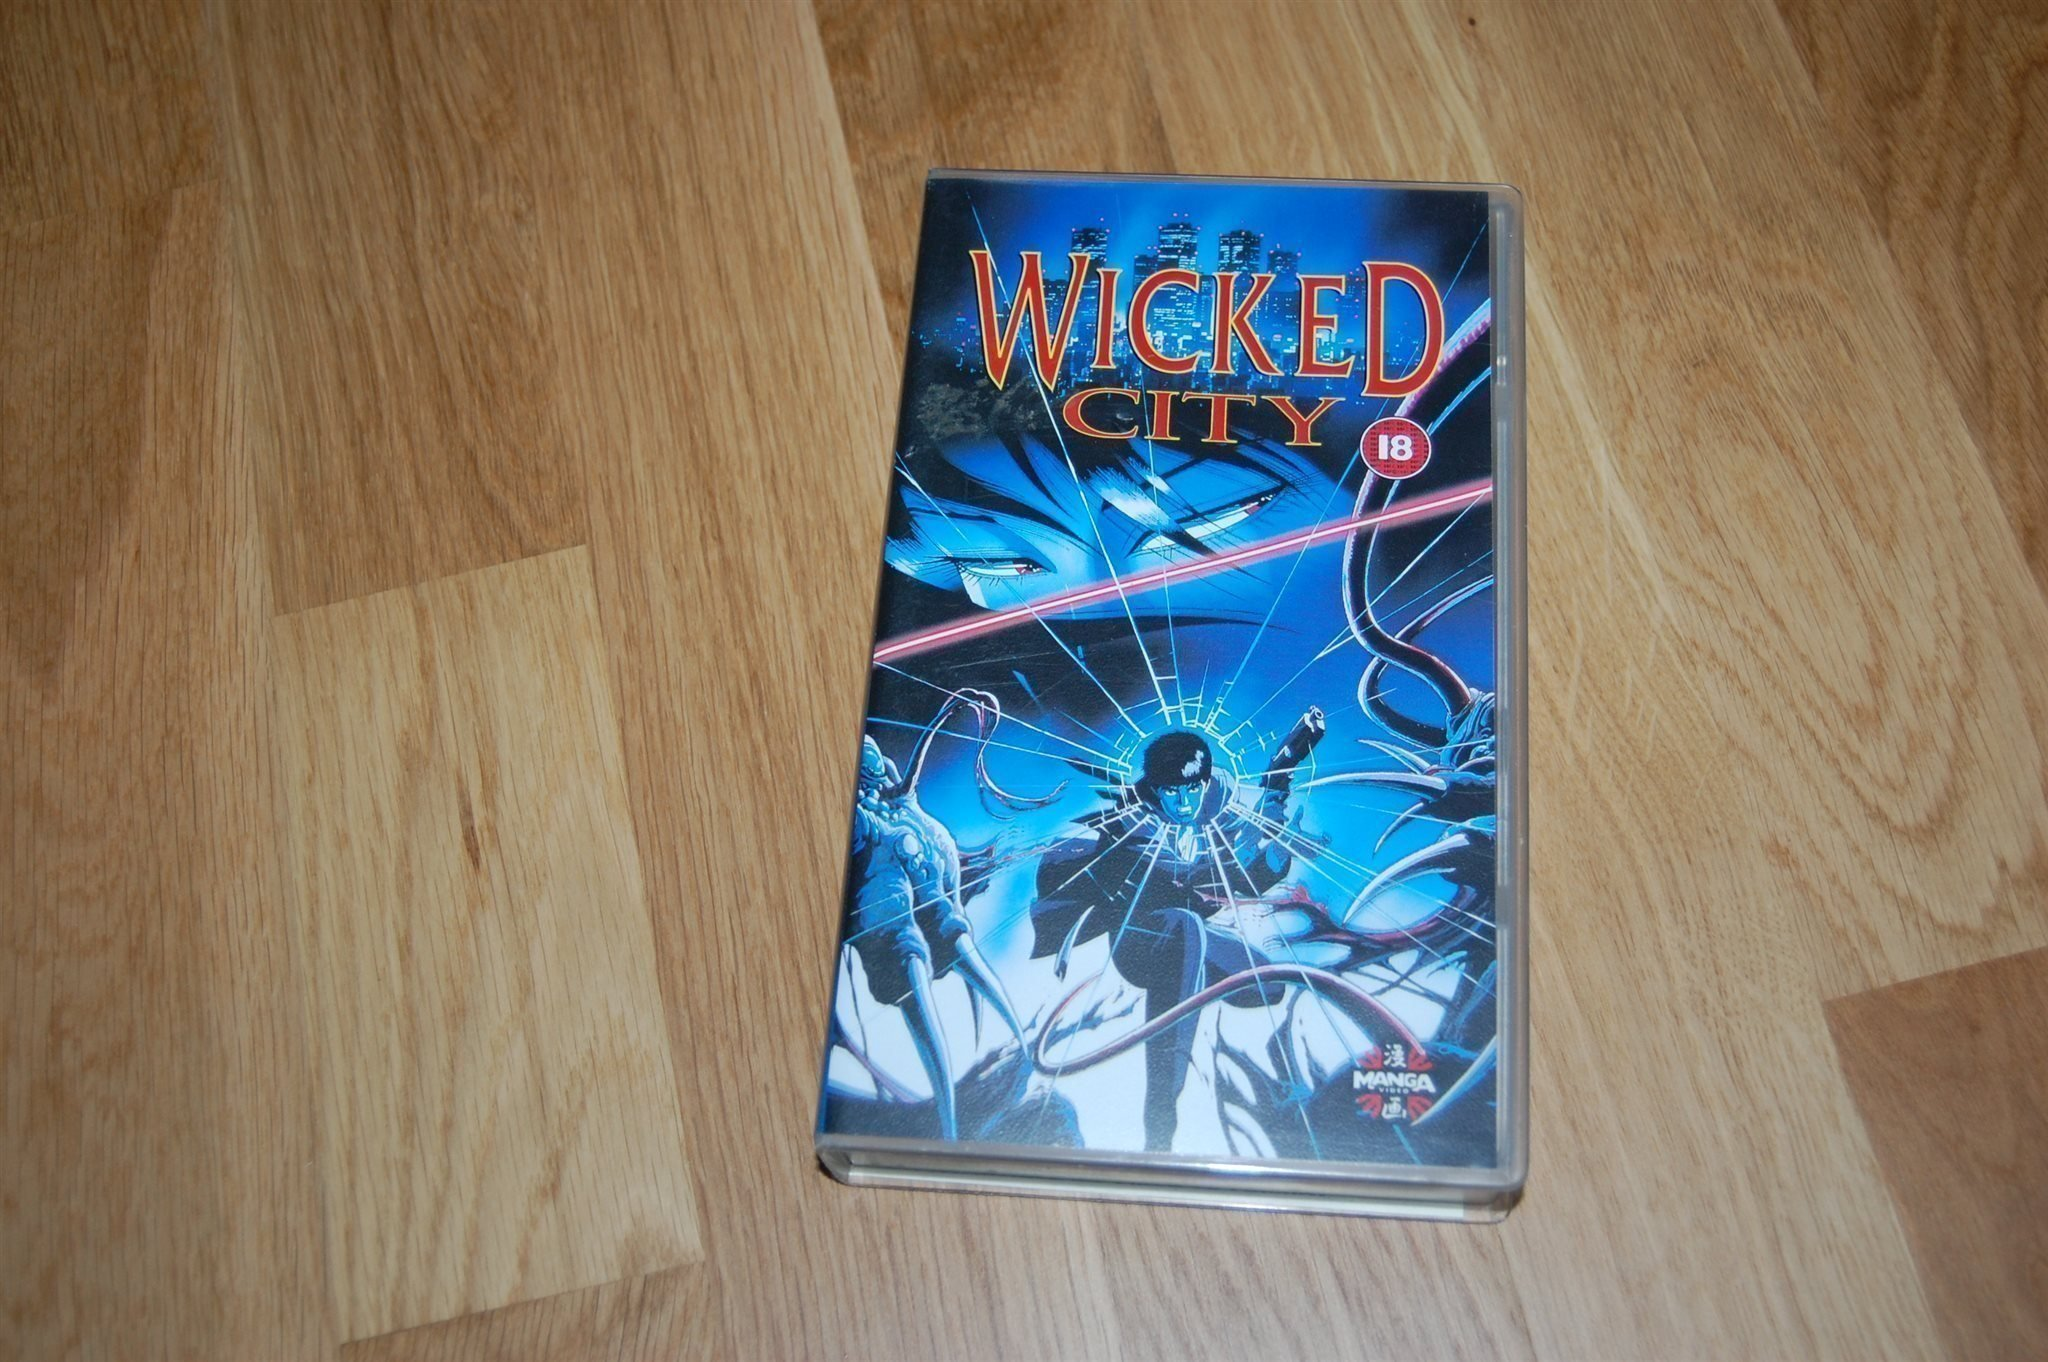 Wicked city, VHS film, Manga video (349938337) ᐈ Köp på Tradera